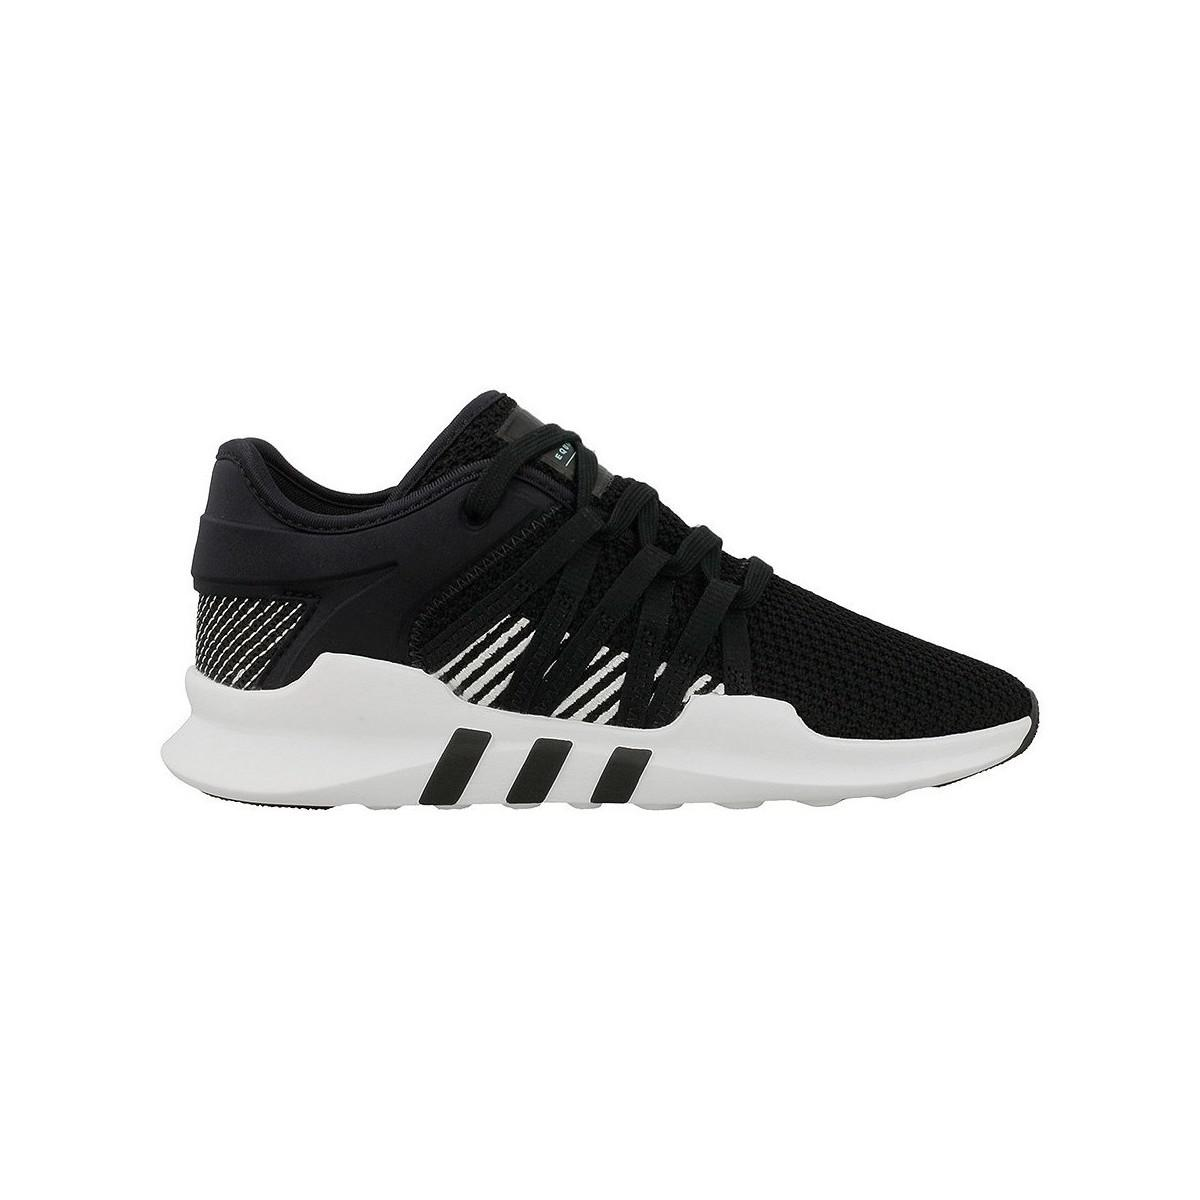 new style 03978 4f88d Adidas - Eqt Racing Adv W Womens Shoes (trainers) In White - Lyst. View  fullscreen